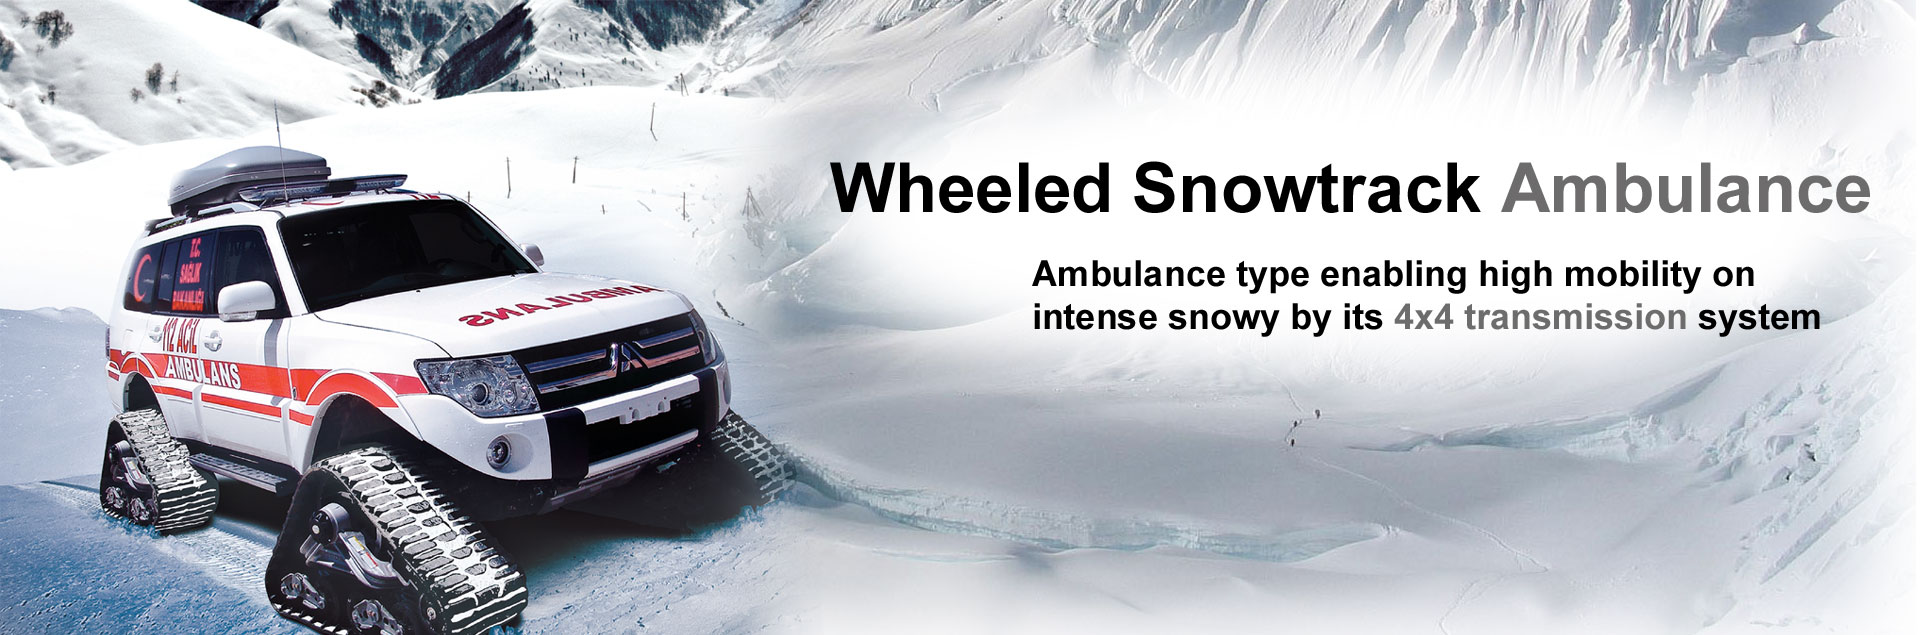 EMS Wheeld Snowtrack Ambulance